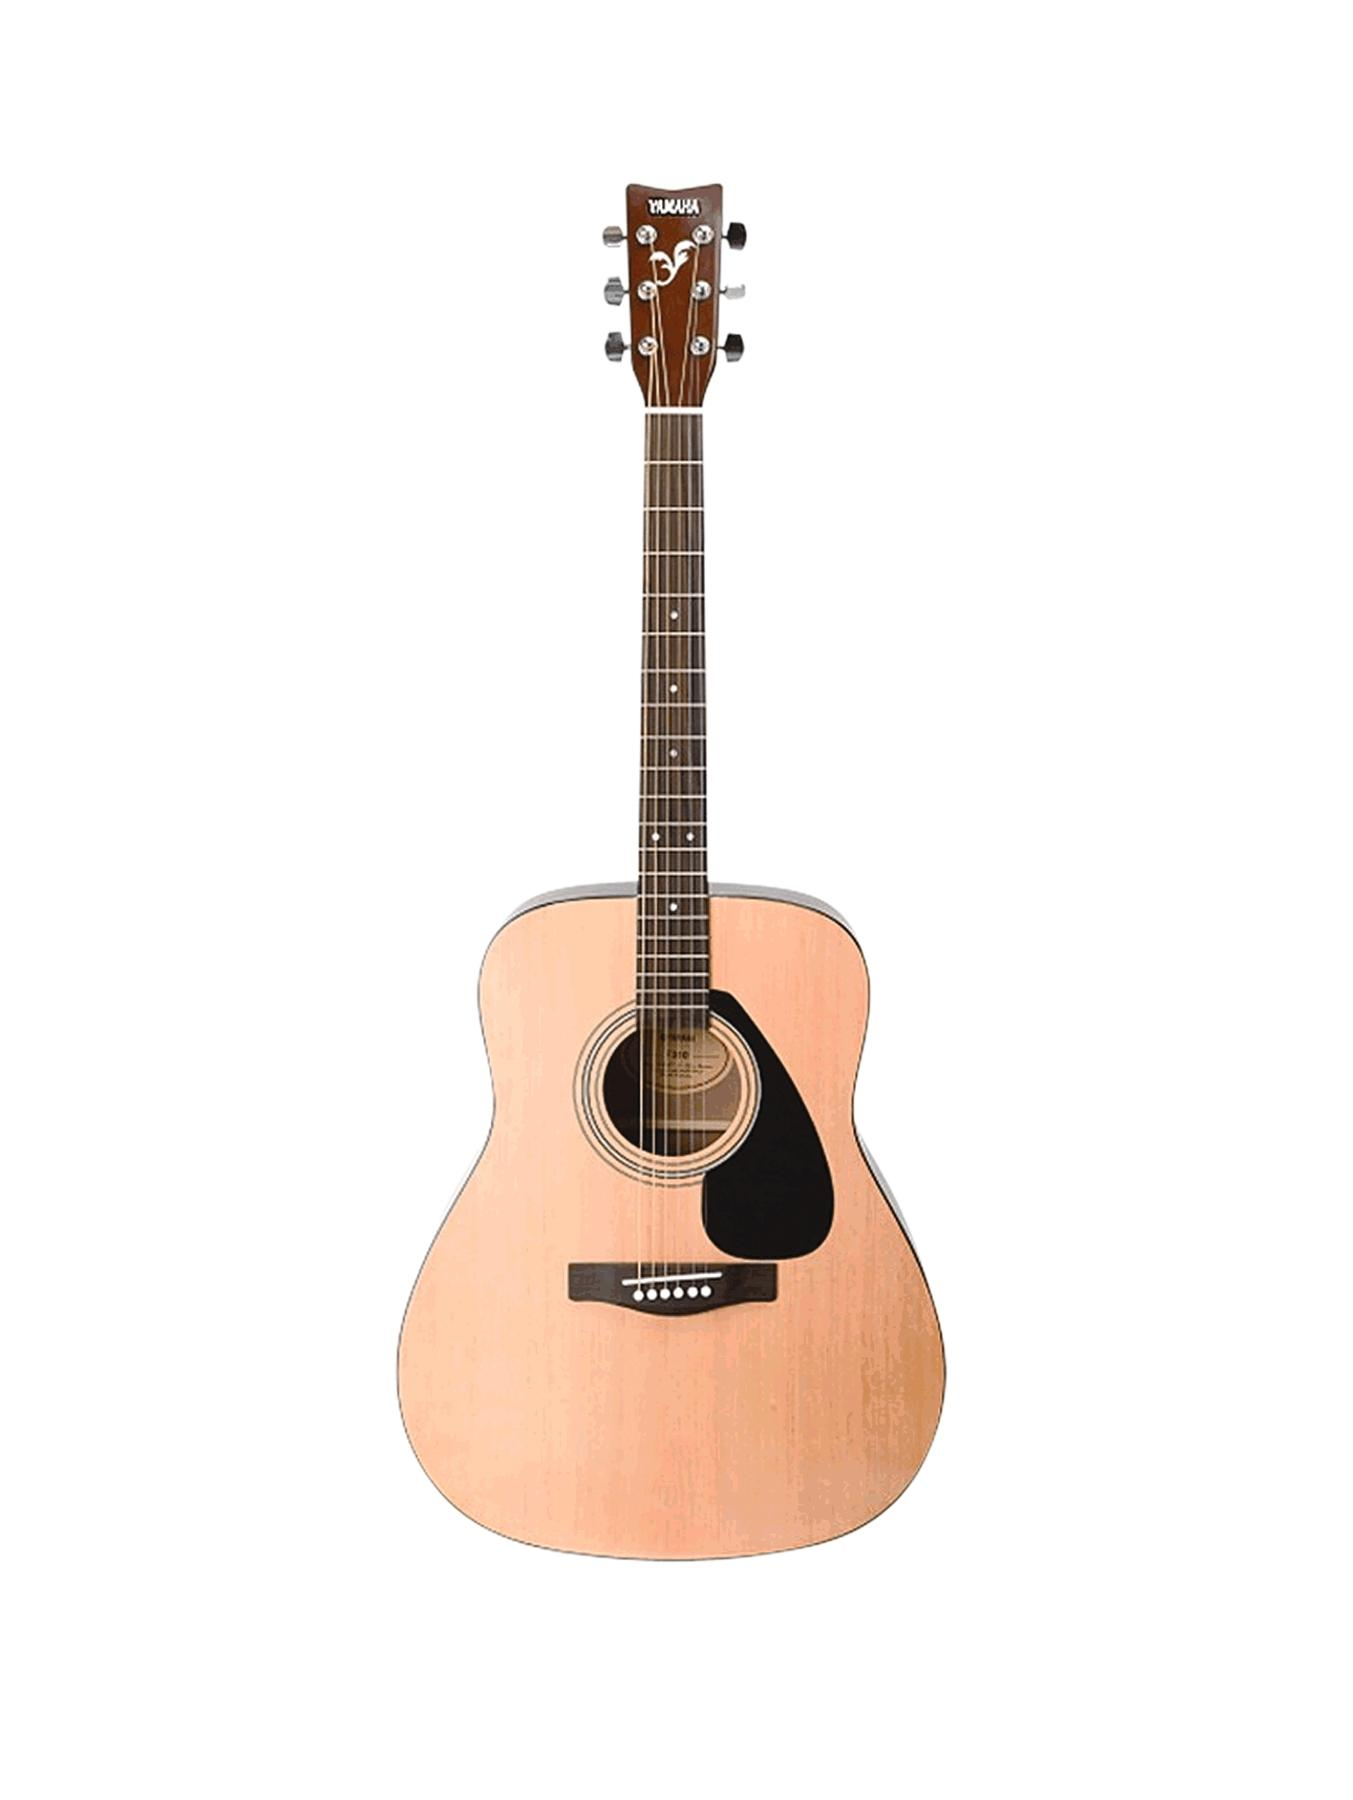 F310 Acoustic Guitar Starter Pack Musical Instrument.